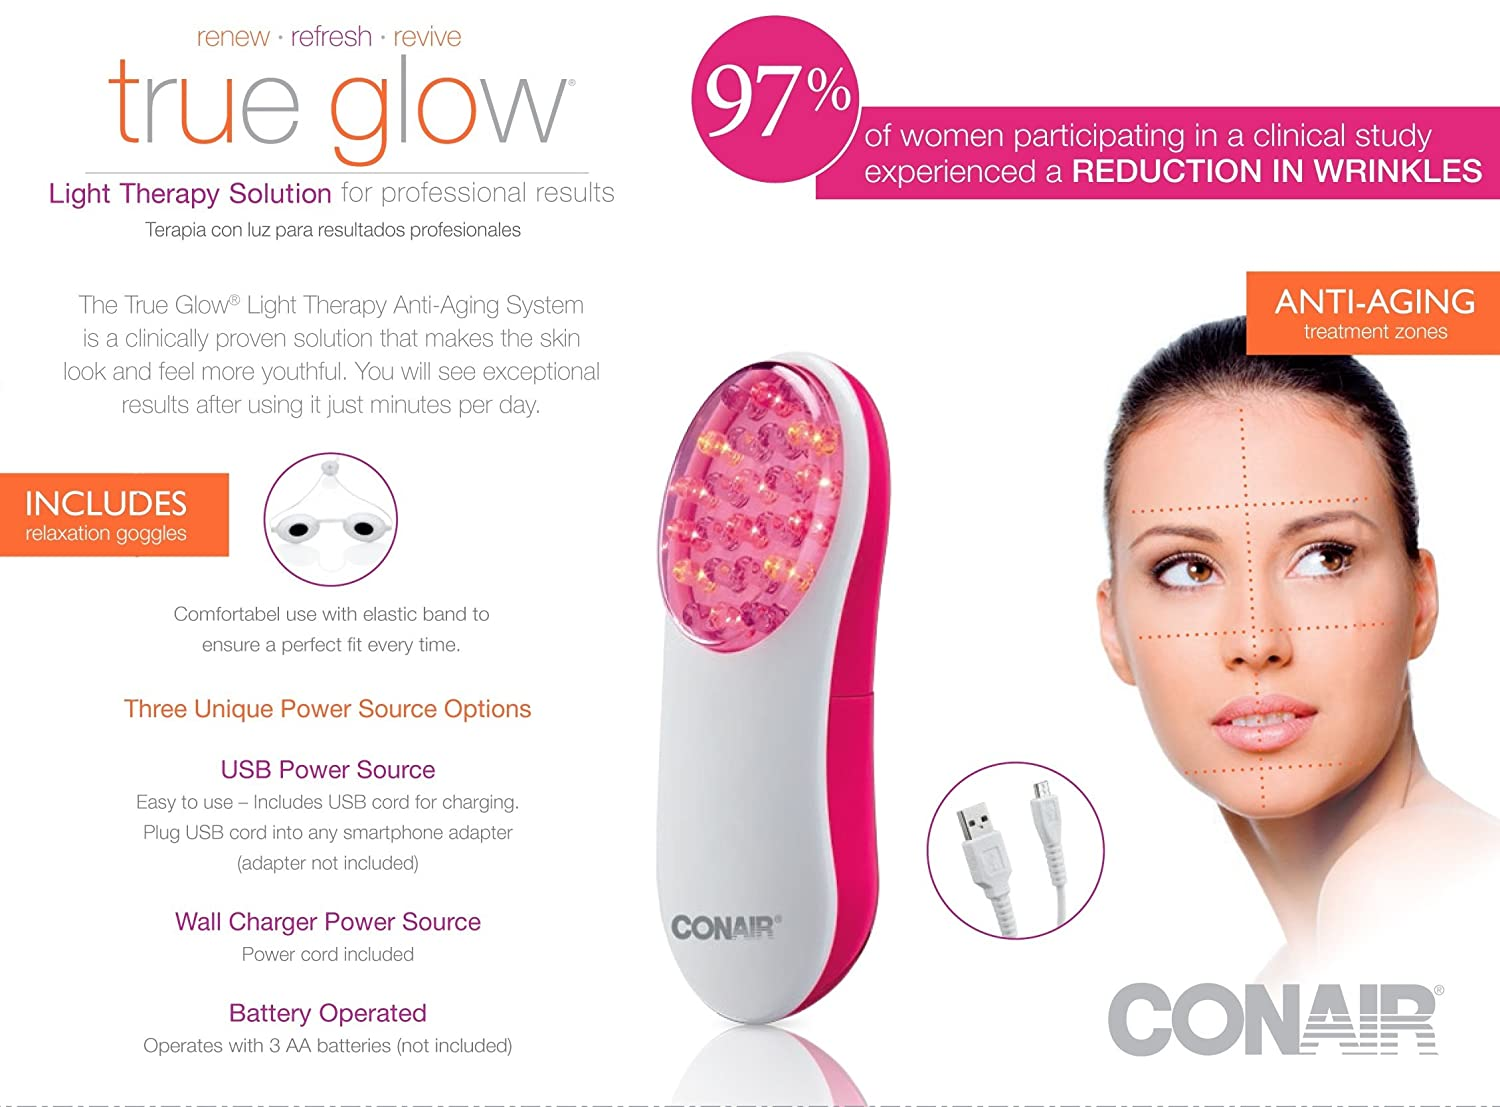 The LED Light Therapy Tools That May Actually Zap YourZits